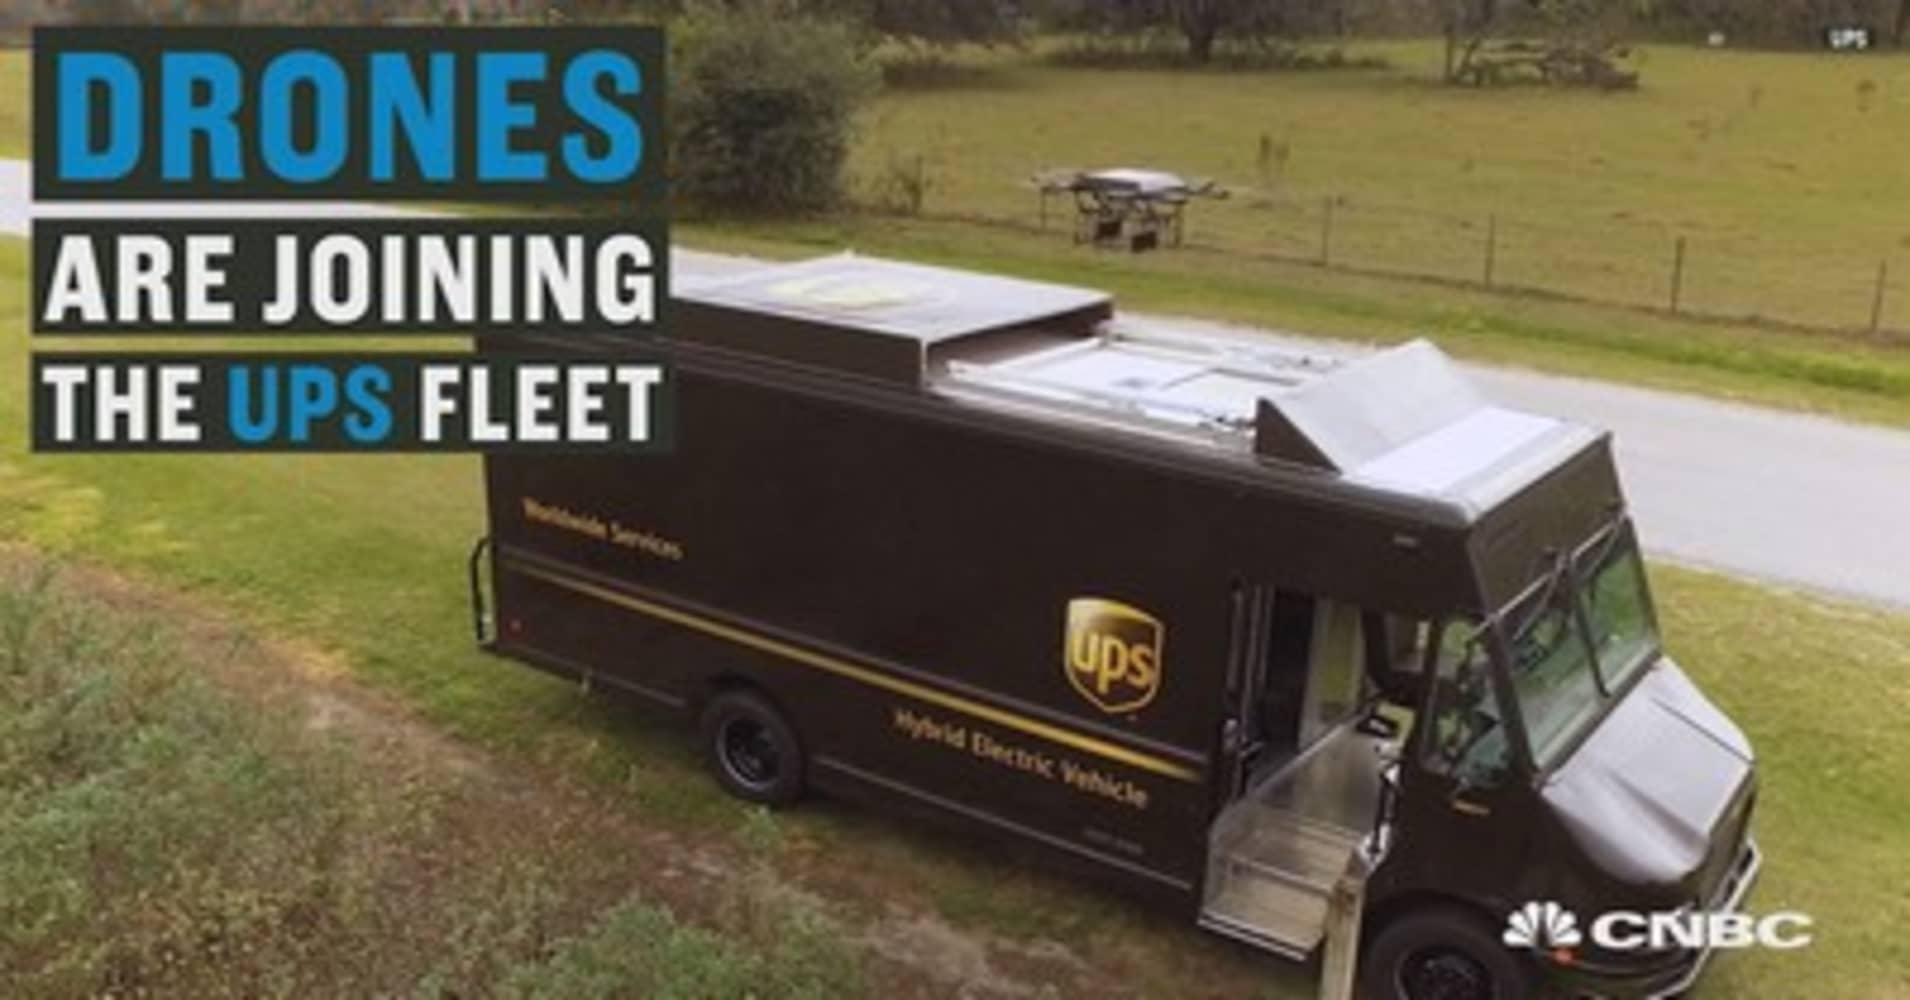 UPS tests drone deliveries via high-tech truck